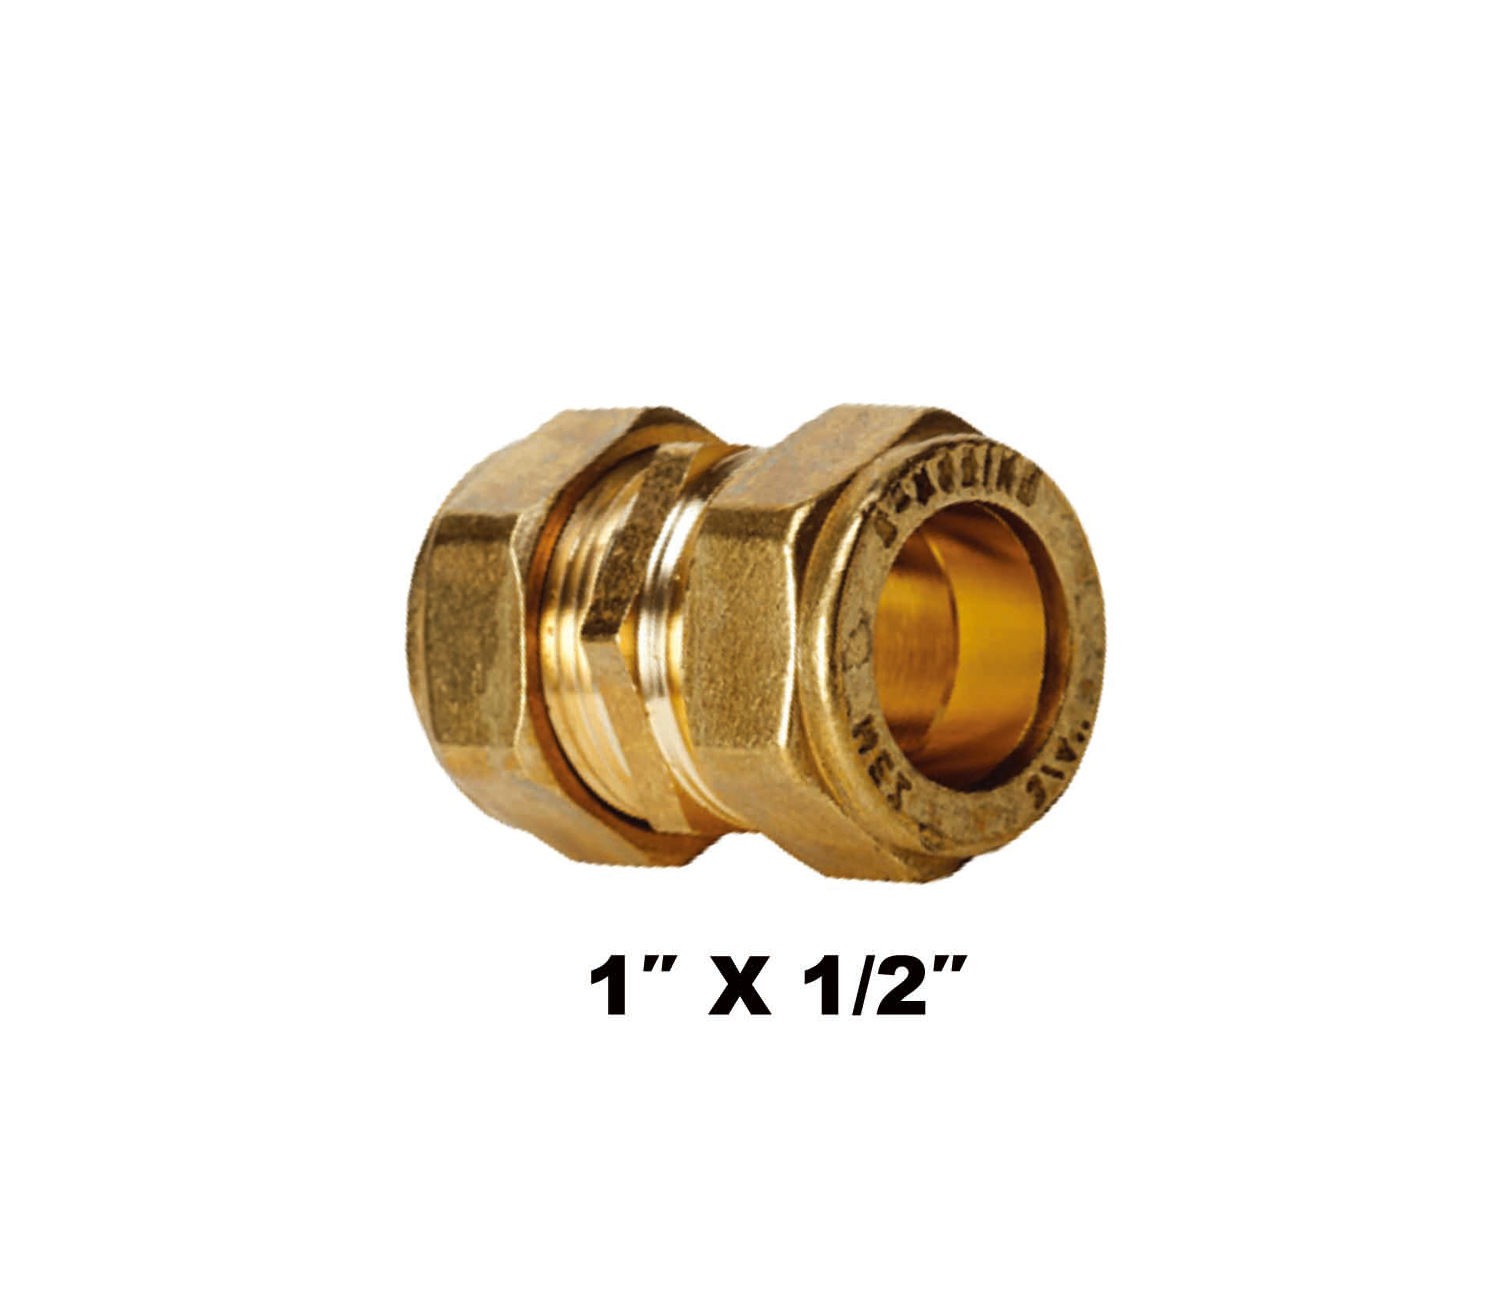 "Straight Compression Coupler C X C 1″ X 1/2"" (31031)"